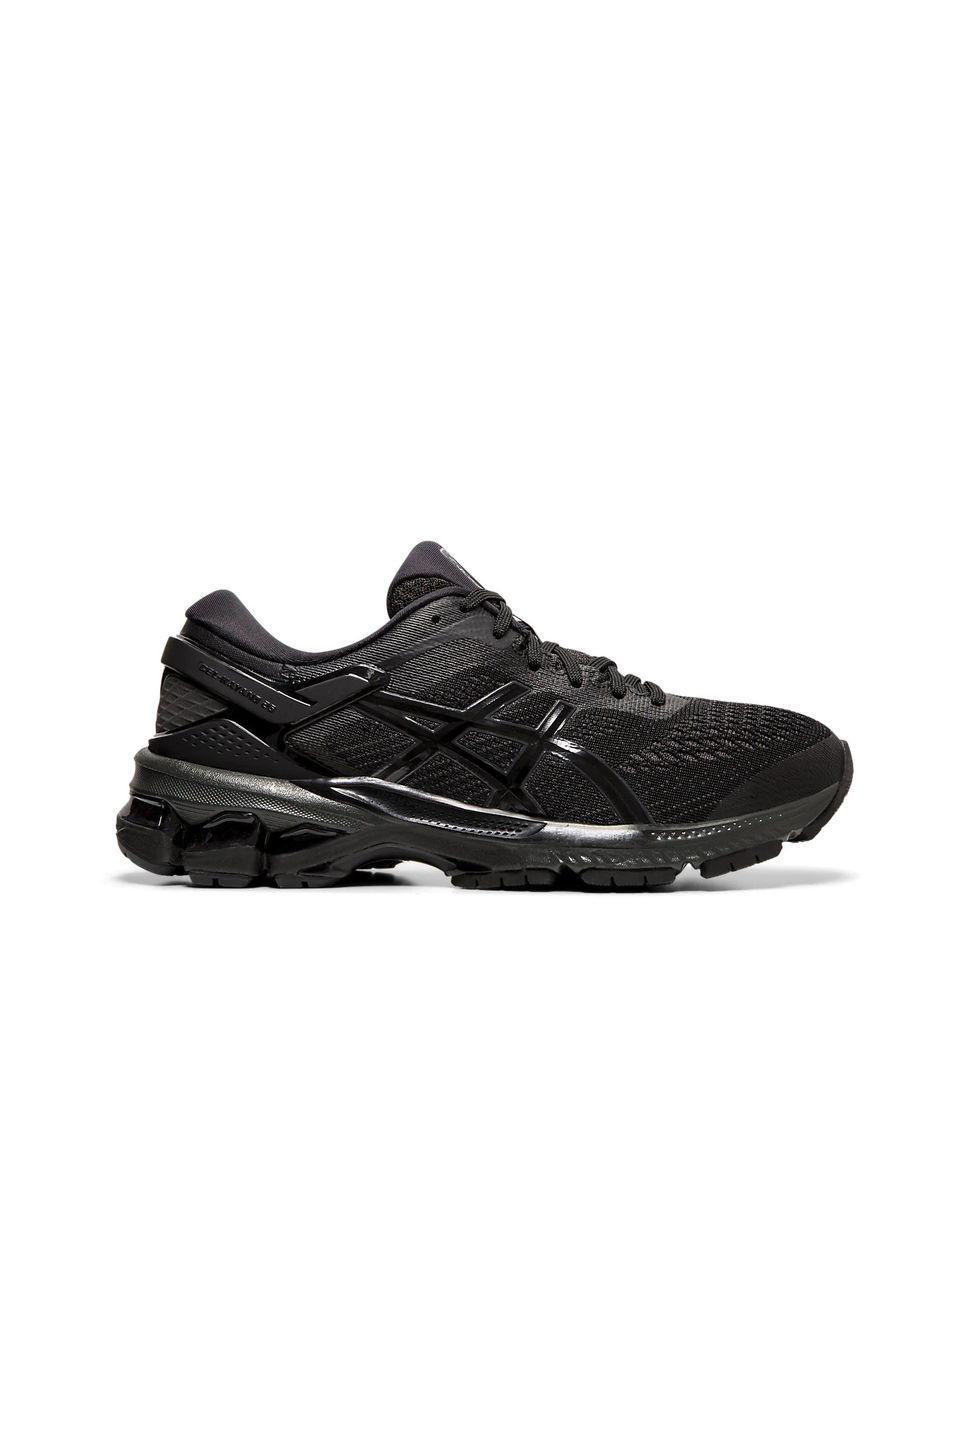 """<p><strong>Which style? </strong>Gel-Kayano 26</p><p><strong>How much?</strong>£108.50</p><p><a class=""""link rapid-noclick-resp"""" href=""""https://go.redirectingat.com?id=127X1599956&url=https%3A%2F%2Fwww.asics.com%2Fgb%2Fen-gb%2Fgel-kayano%25E2%2584%25A2-26%2Fp%2F1012A457-002.html%3Fwidth%3DStandard&sref=https%3A%2F%2Fwww.womenshealthmag.com%2Fuk%2Ffitness%2Fg28619284%2Fvegan-trainers%2F"""" rel=""""nofollow noopener"""" target=""""_blank"""" data-ylk=""""slk:SHOP NOW"""">SHOP NOW</a></p><p>The king of running trainers, <a href=""""https://www.womenshealthmag.com/uk/gym-wear/g32455854/asics-sale/"""" rel=""""nofollow noopener"""" target=""""_blank"""" data-ylk=""""slk:Asics"""" class=""""link rapid-noclick-resp"""">Asics</a> makes a wide range of Vegan options (anything that isn't animal-friendly will have an 'L' for leather in the name). </p><p>Our favourites (and fashion editors everywhere, just FYI) are the trusty Gel-Kayanos for their super cushioned sole, odour-resistant properties and cool reflective strips that make night time jogs a whole lot safer. No head torches here.</p>"""